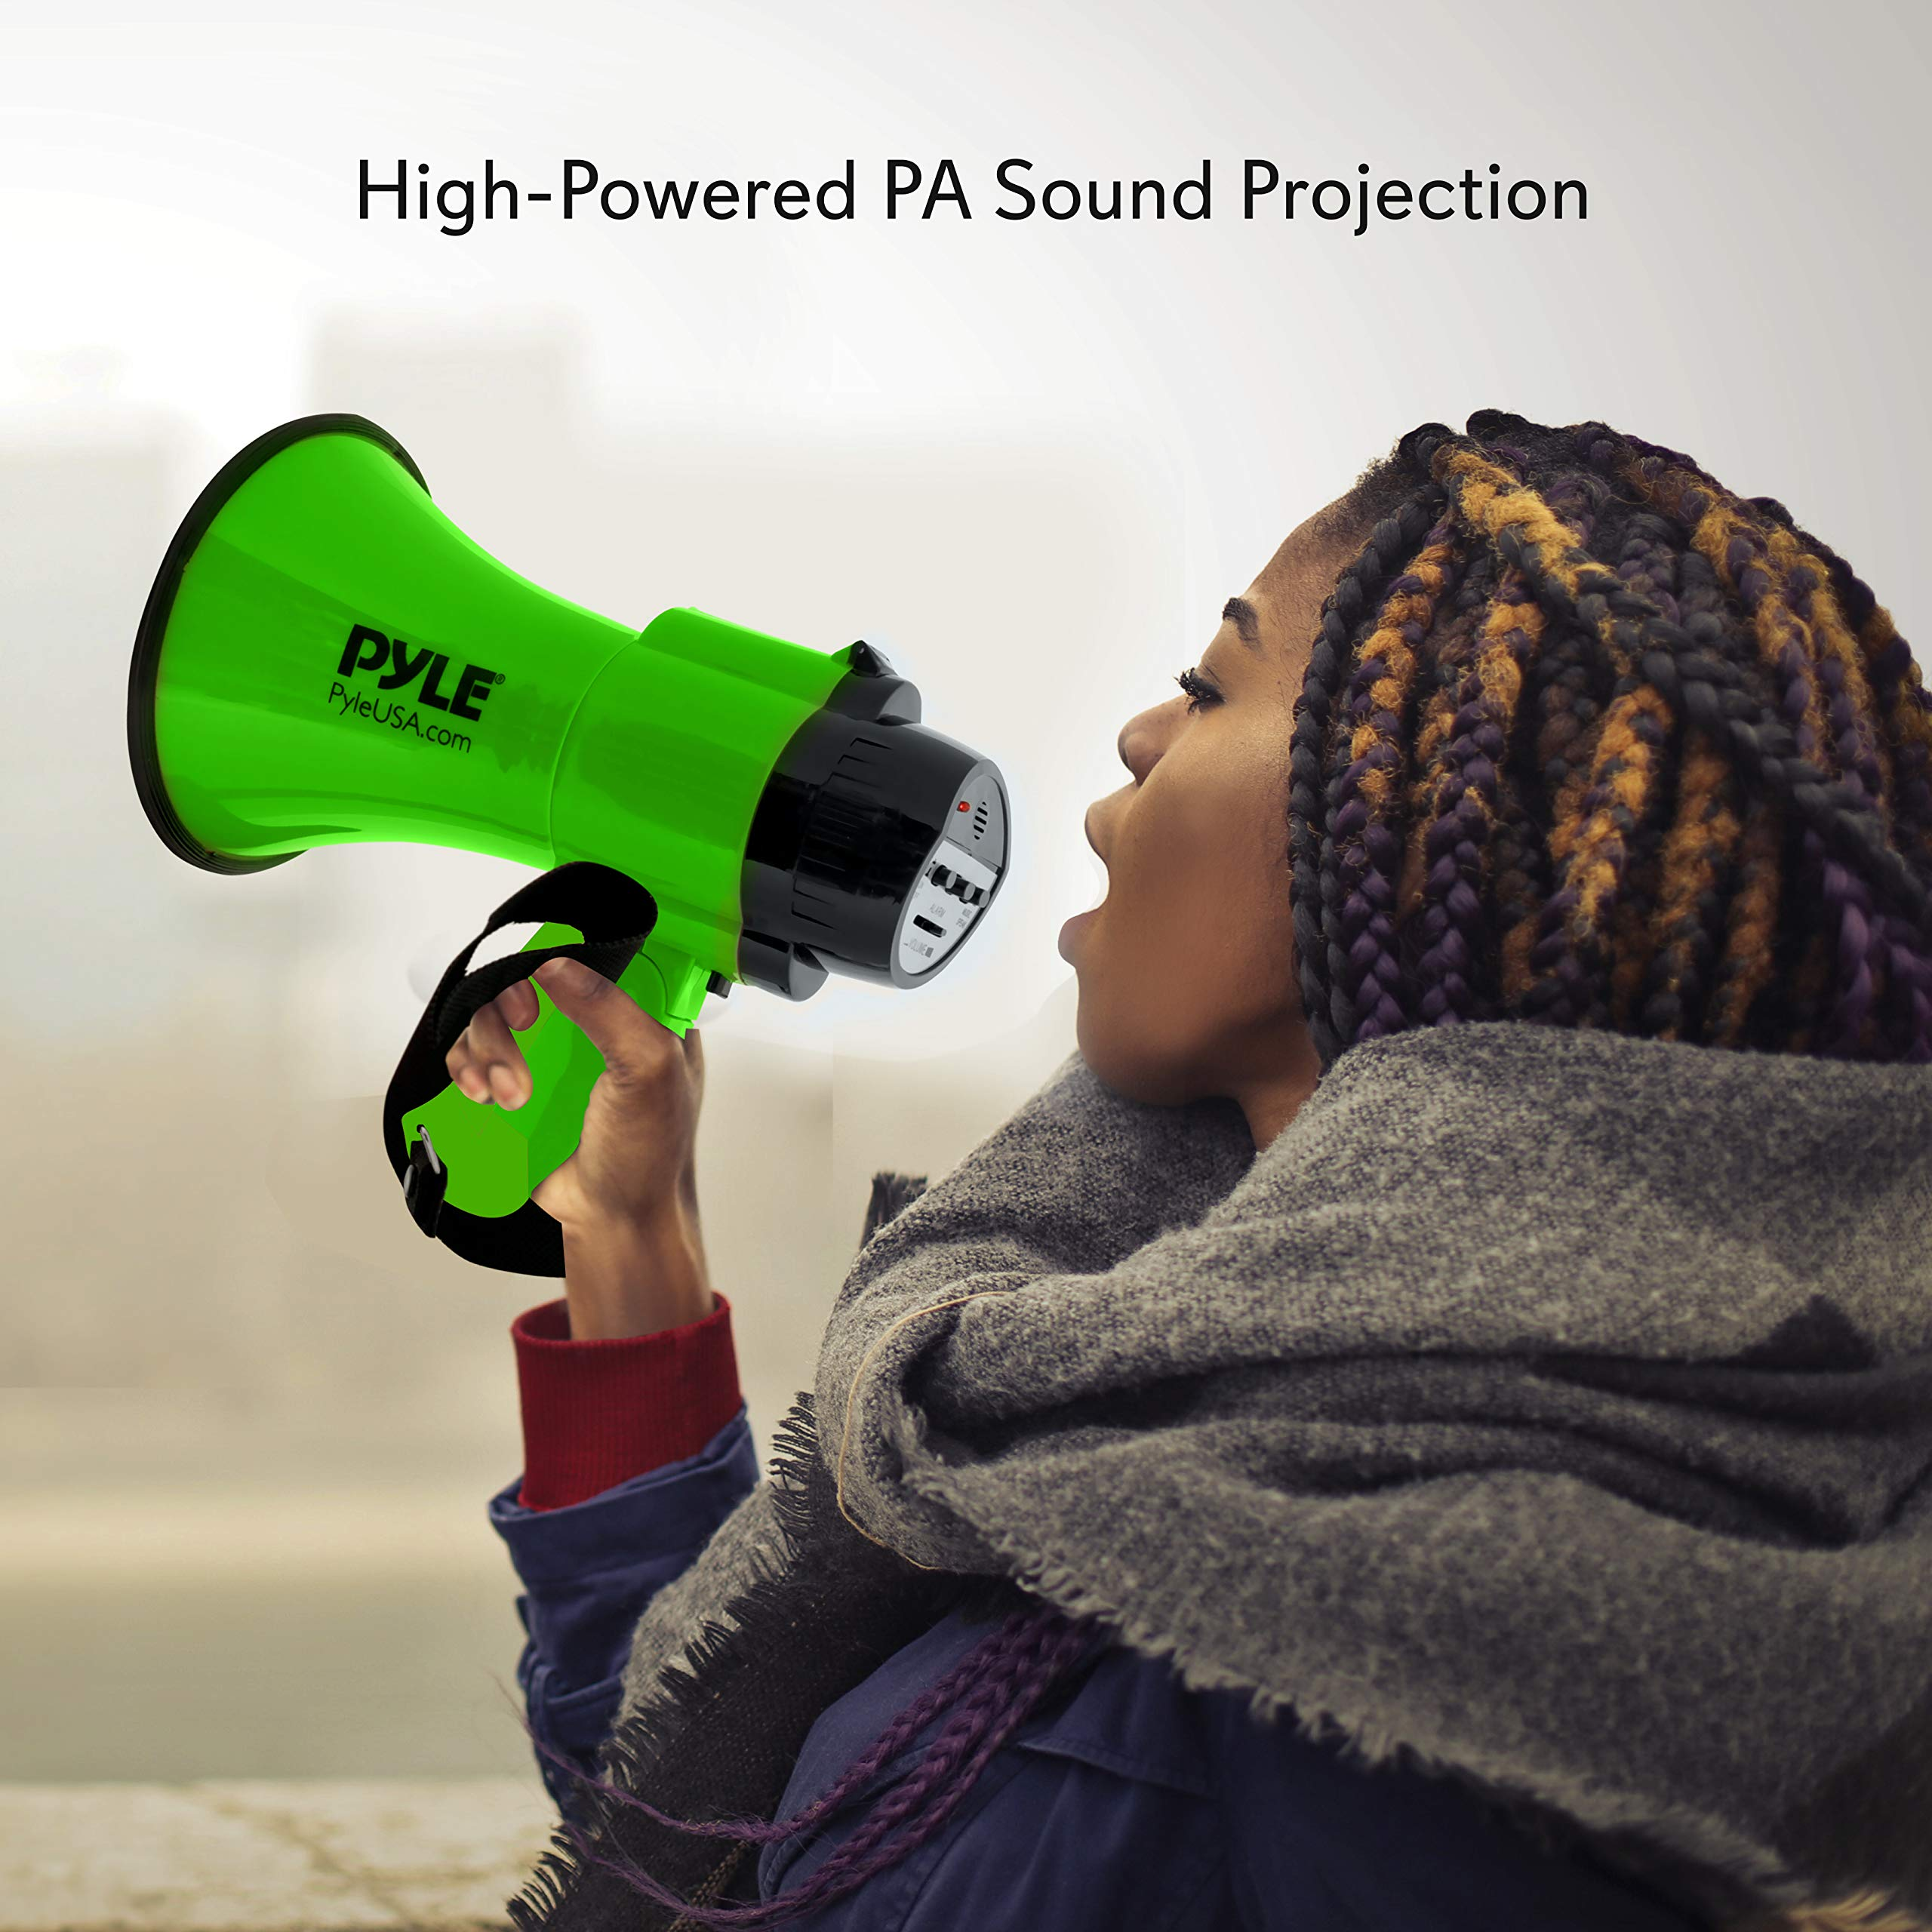 Portable Megaphone Speaker Siren Bullhorn - Compact and Battery Operated with 30 Watt Power, Microphone, 2 Modes, PA Sound and Foldable Handle for Cheerleading and Police Use - Pyle PMP32GR (Green) by Pyle (Image #6)